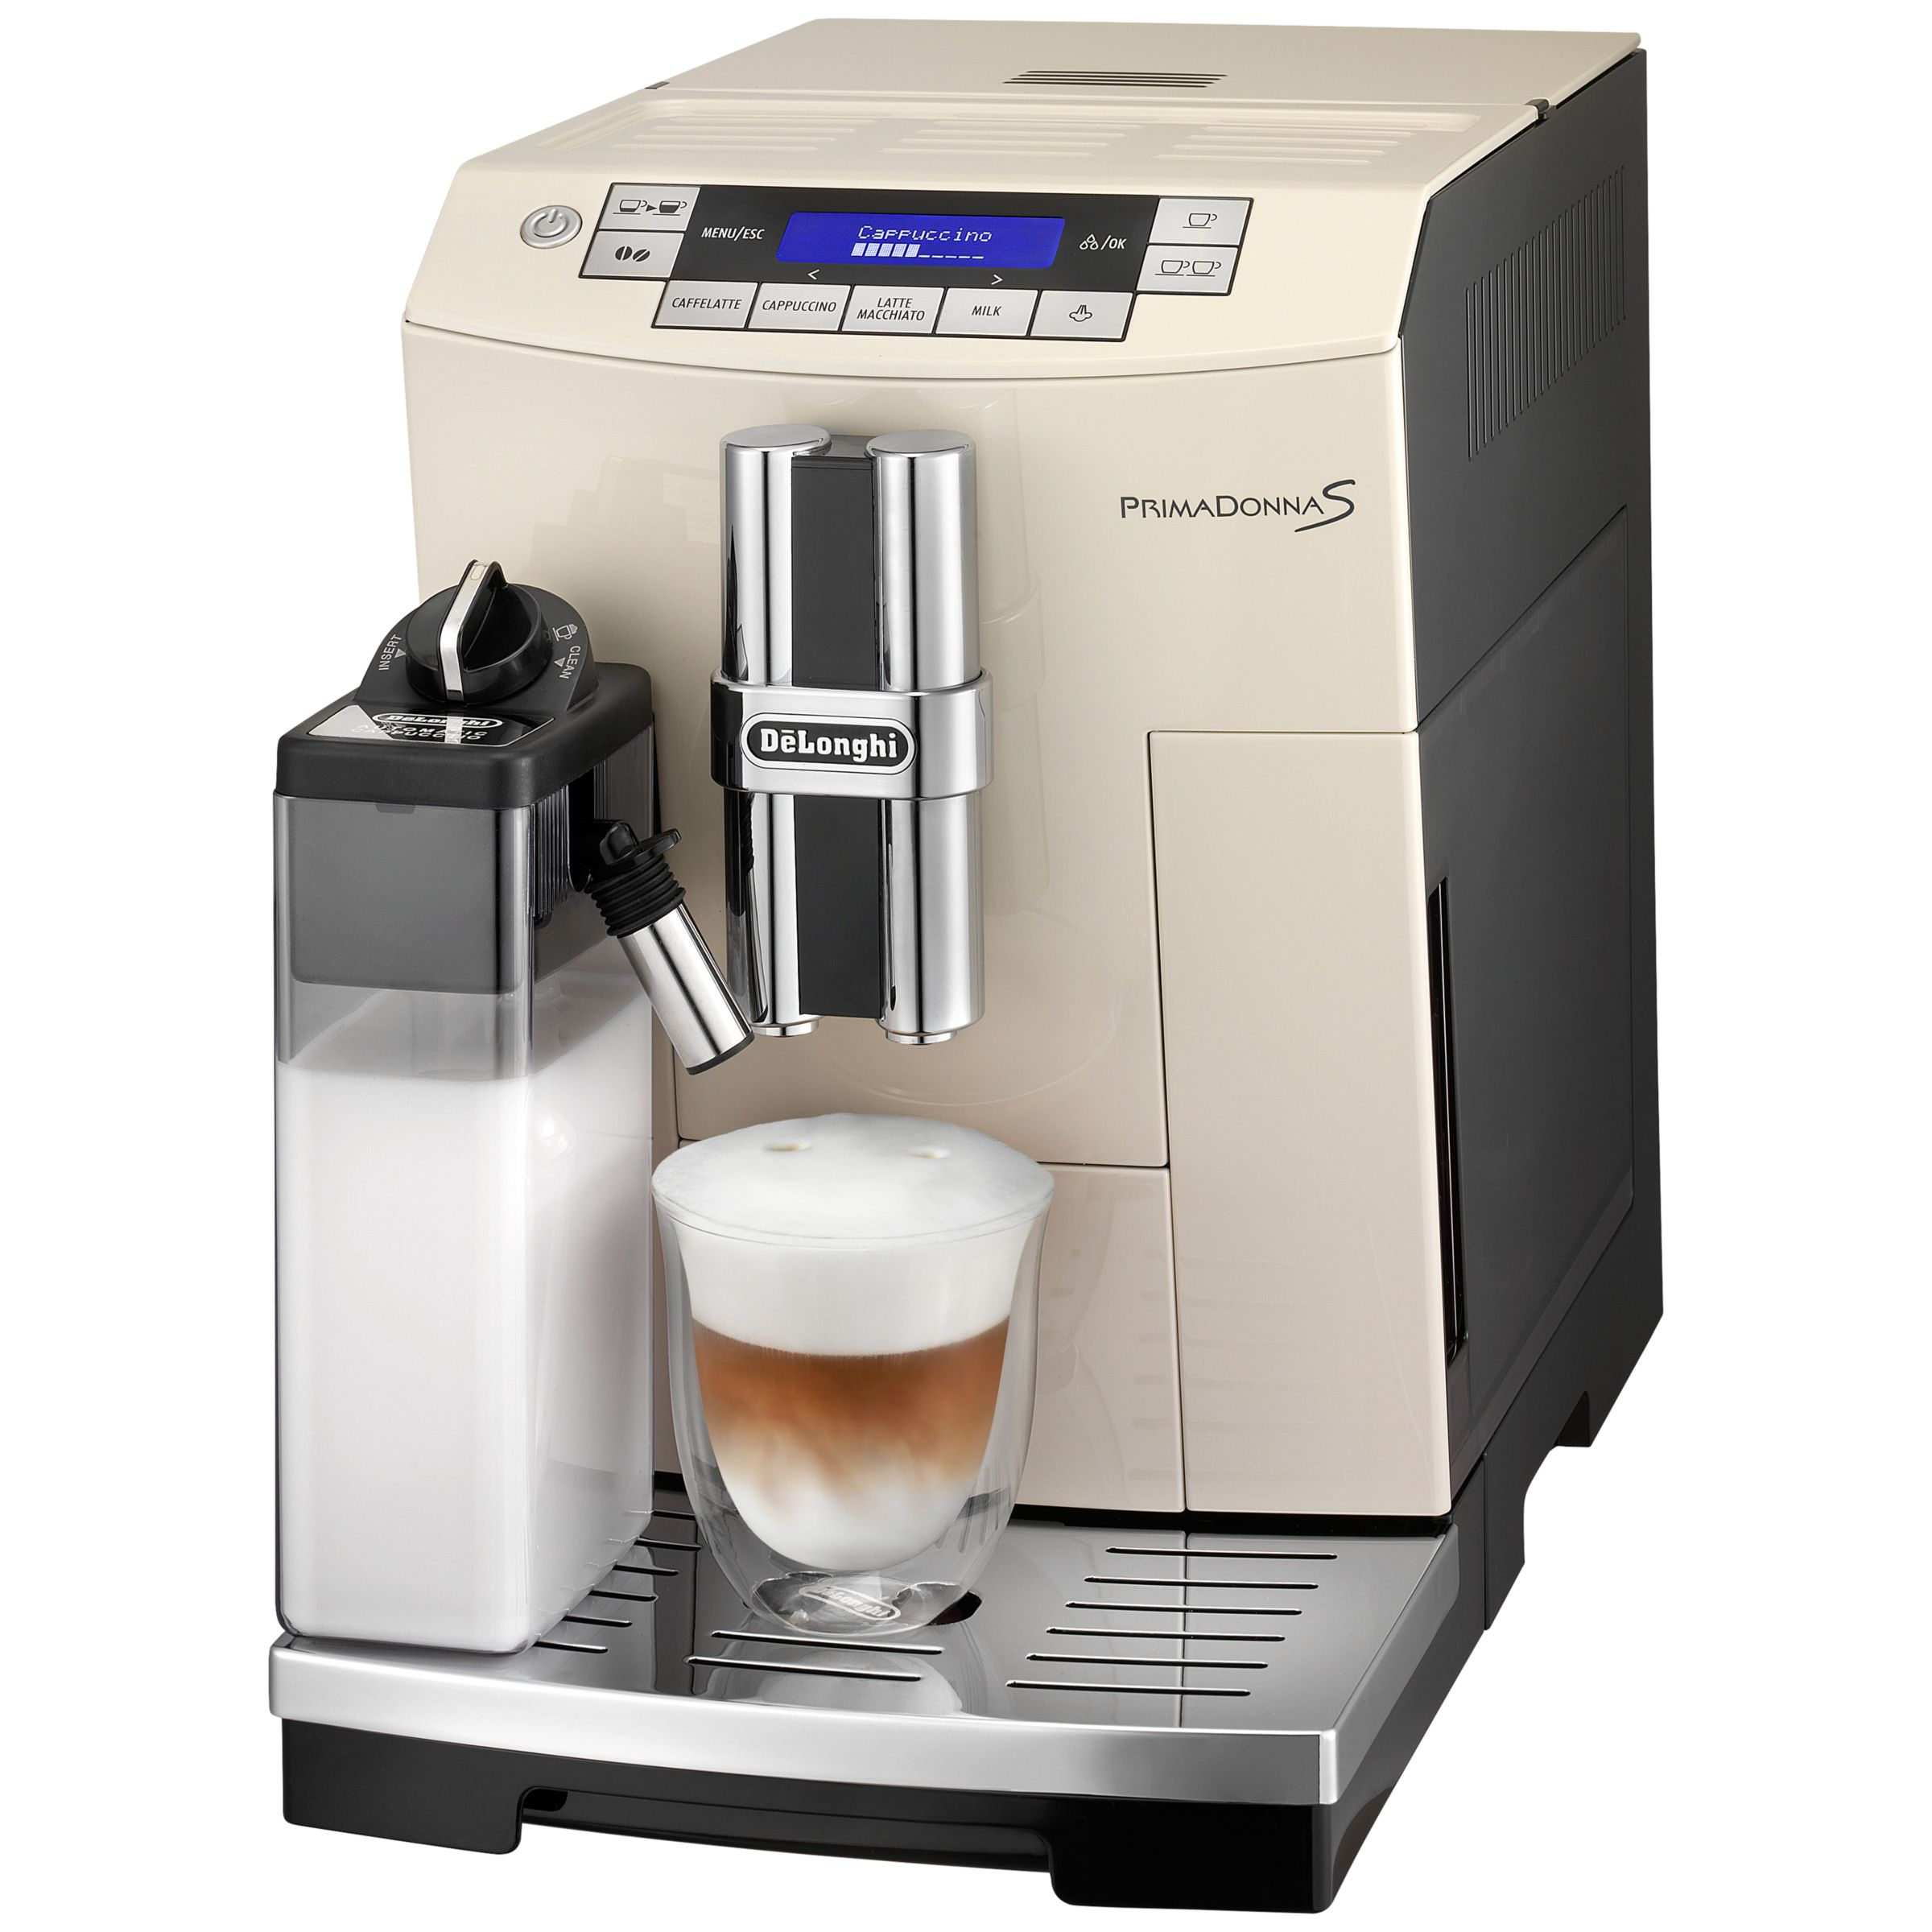 Delonghi Coffee Maker Sainsburys : DeLonghi PrimaDonna ESAM6600 Coffee Maker - Compare Prices at Foundem